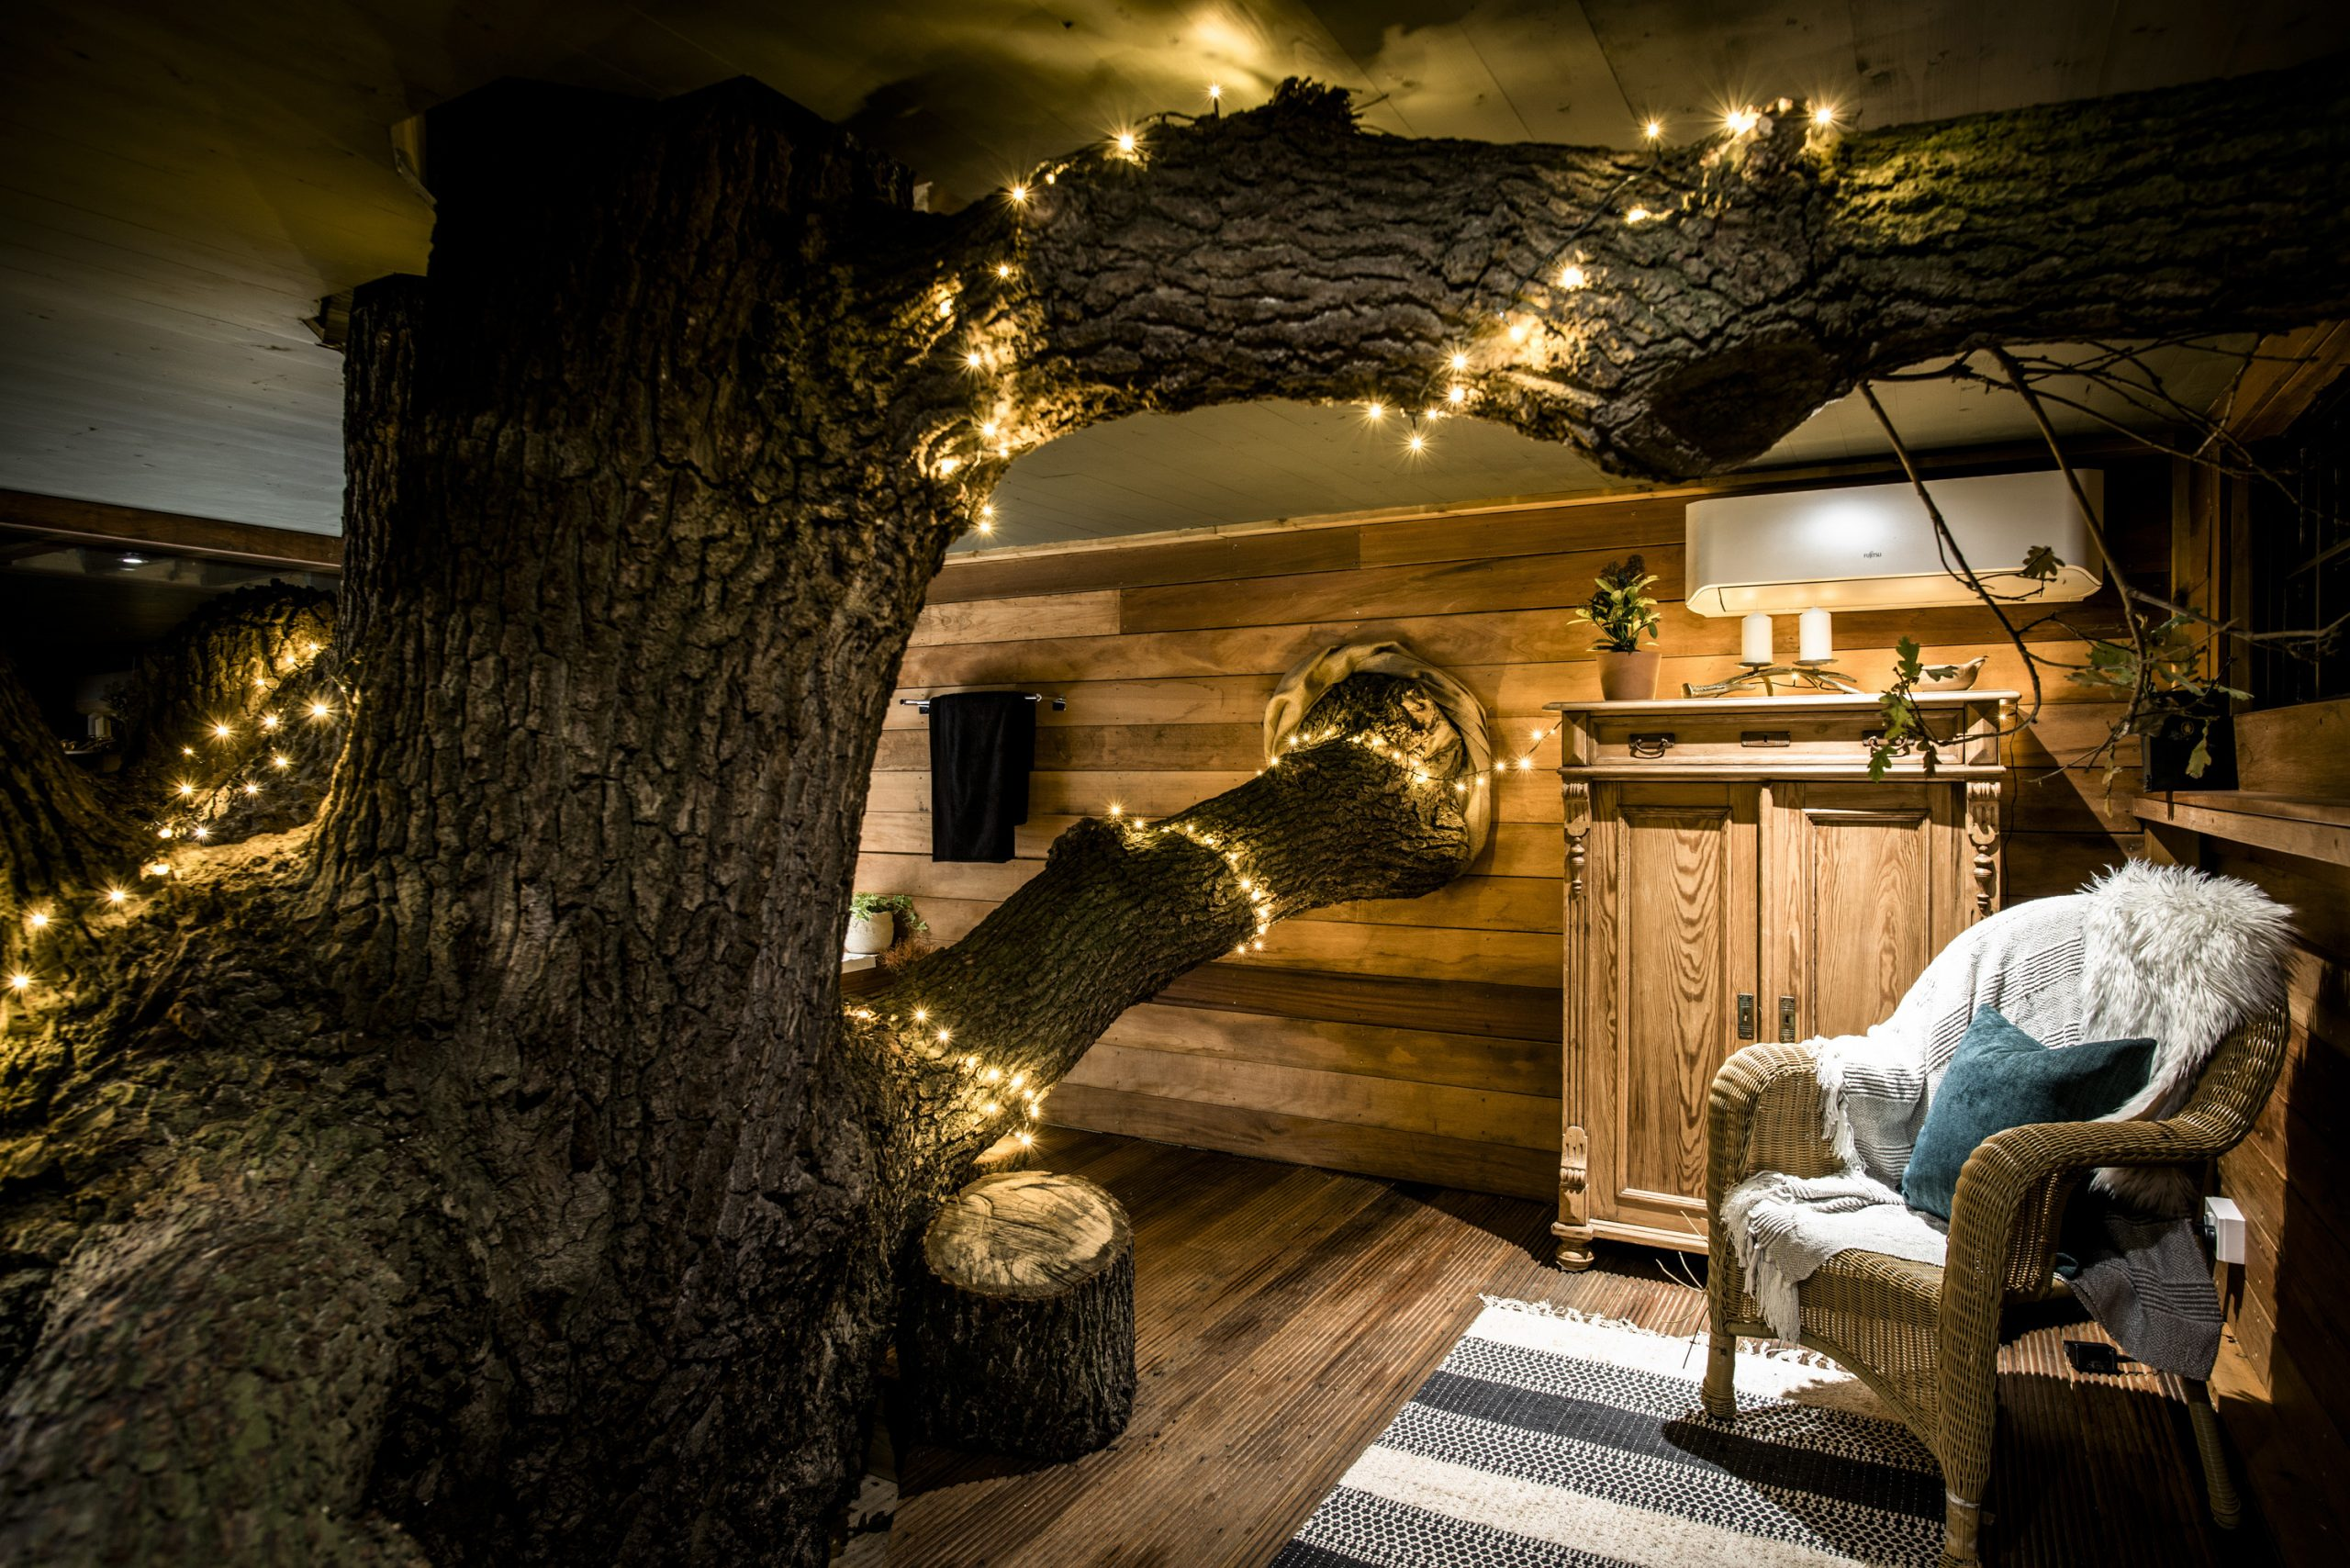 Nighttime photo inside The Old Oak at Colemans Farm showing the snug area